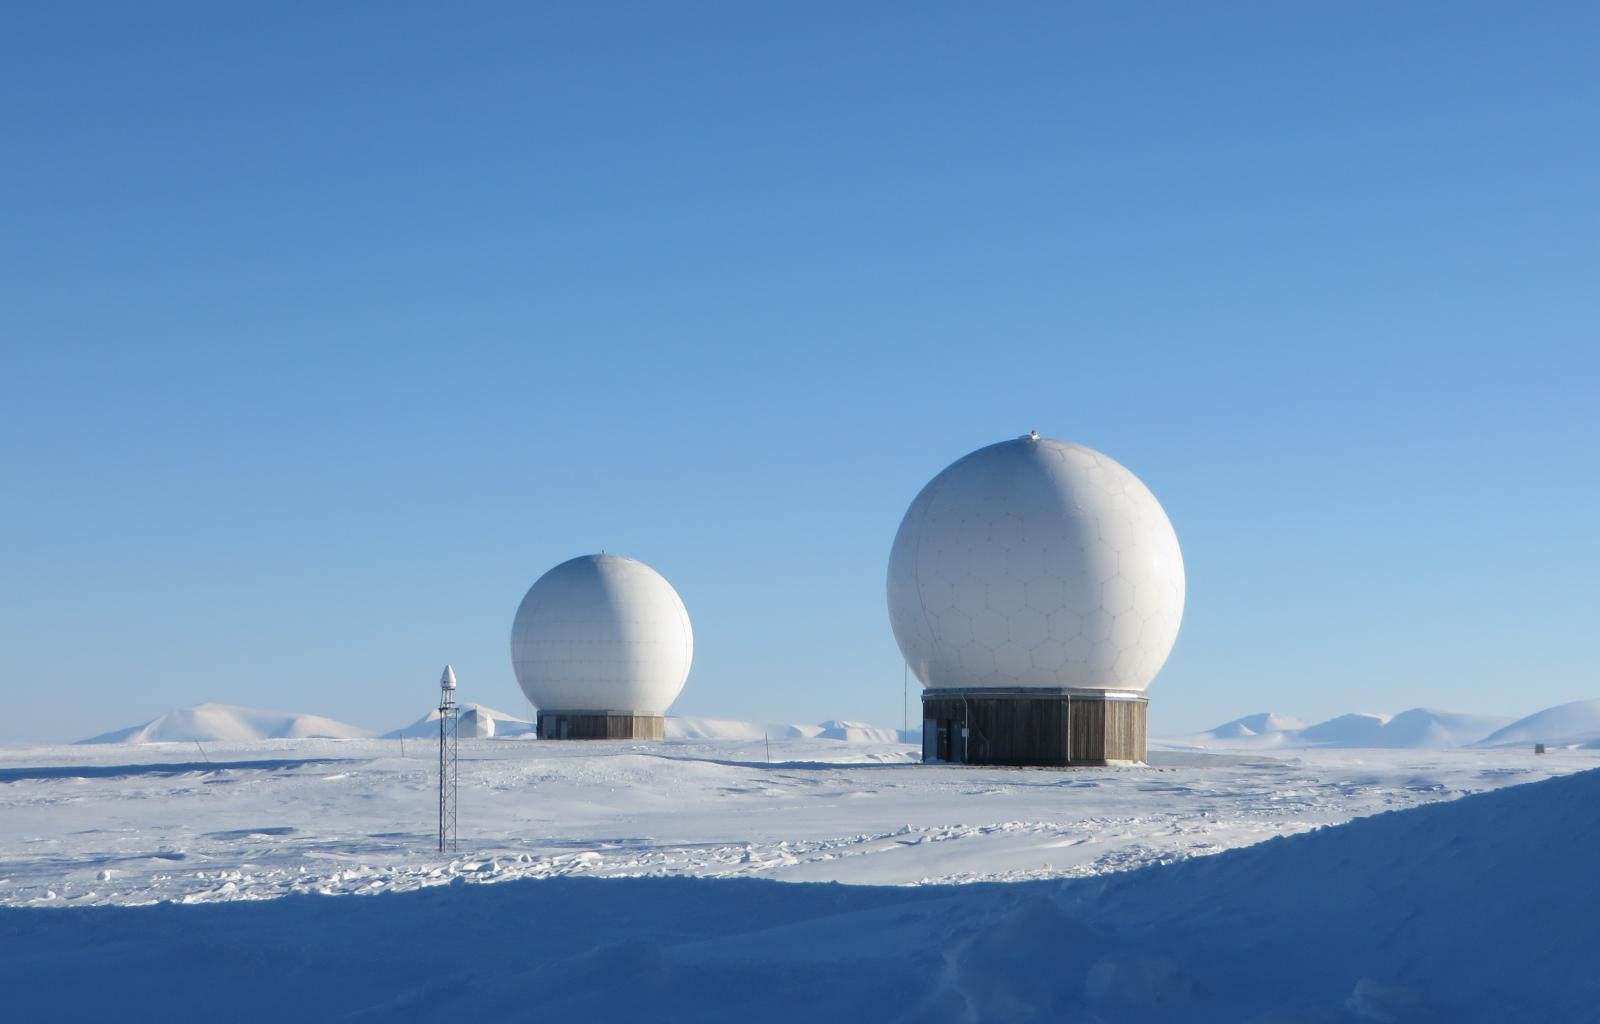 Two Arctic radar domes